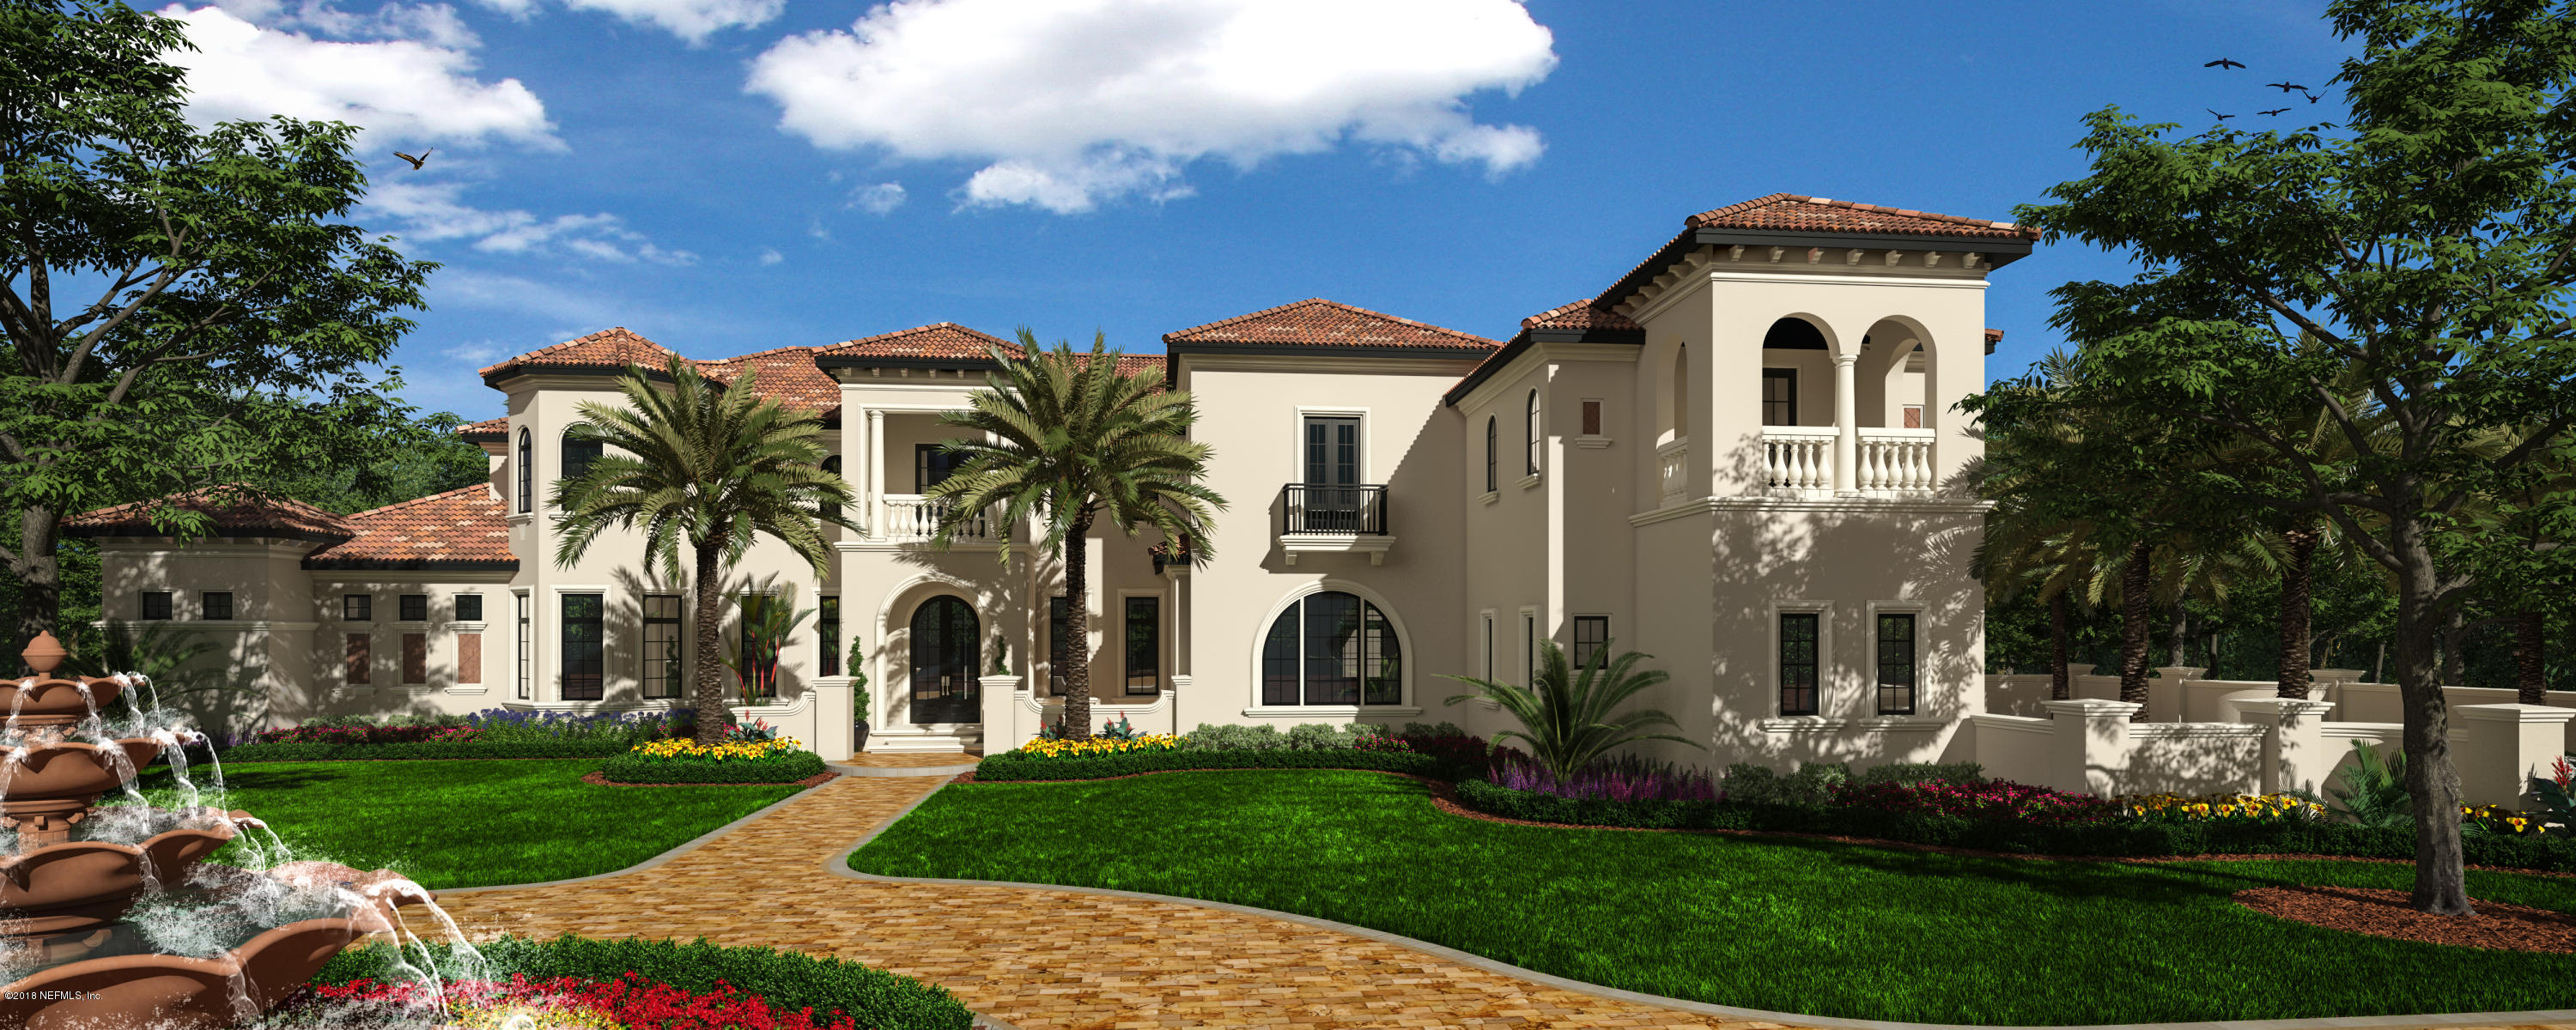 200  DEER COLONY LN, Ponte Vedra, Florida